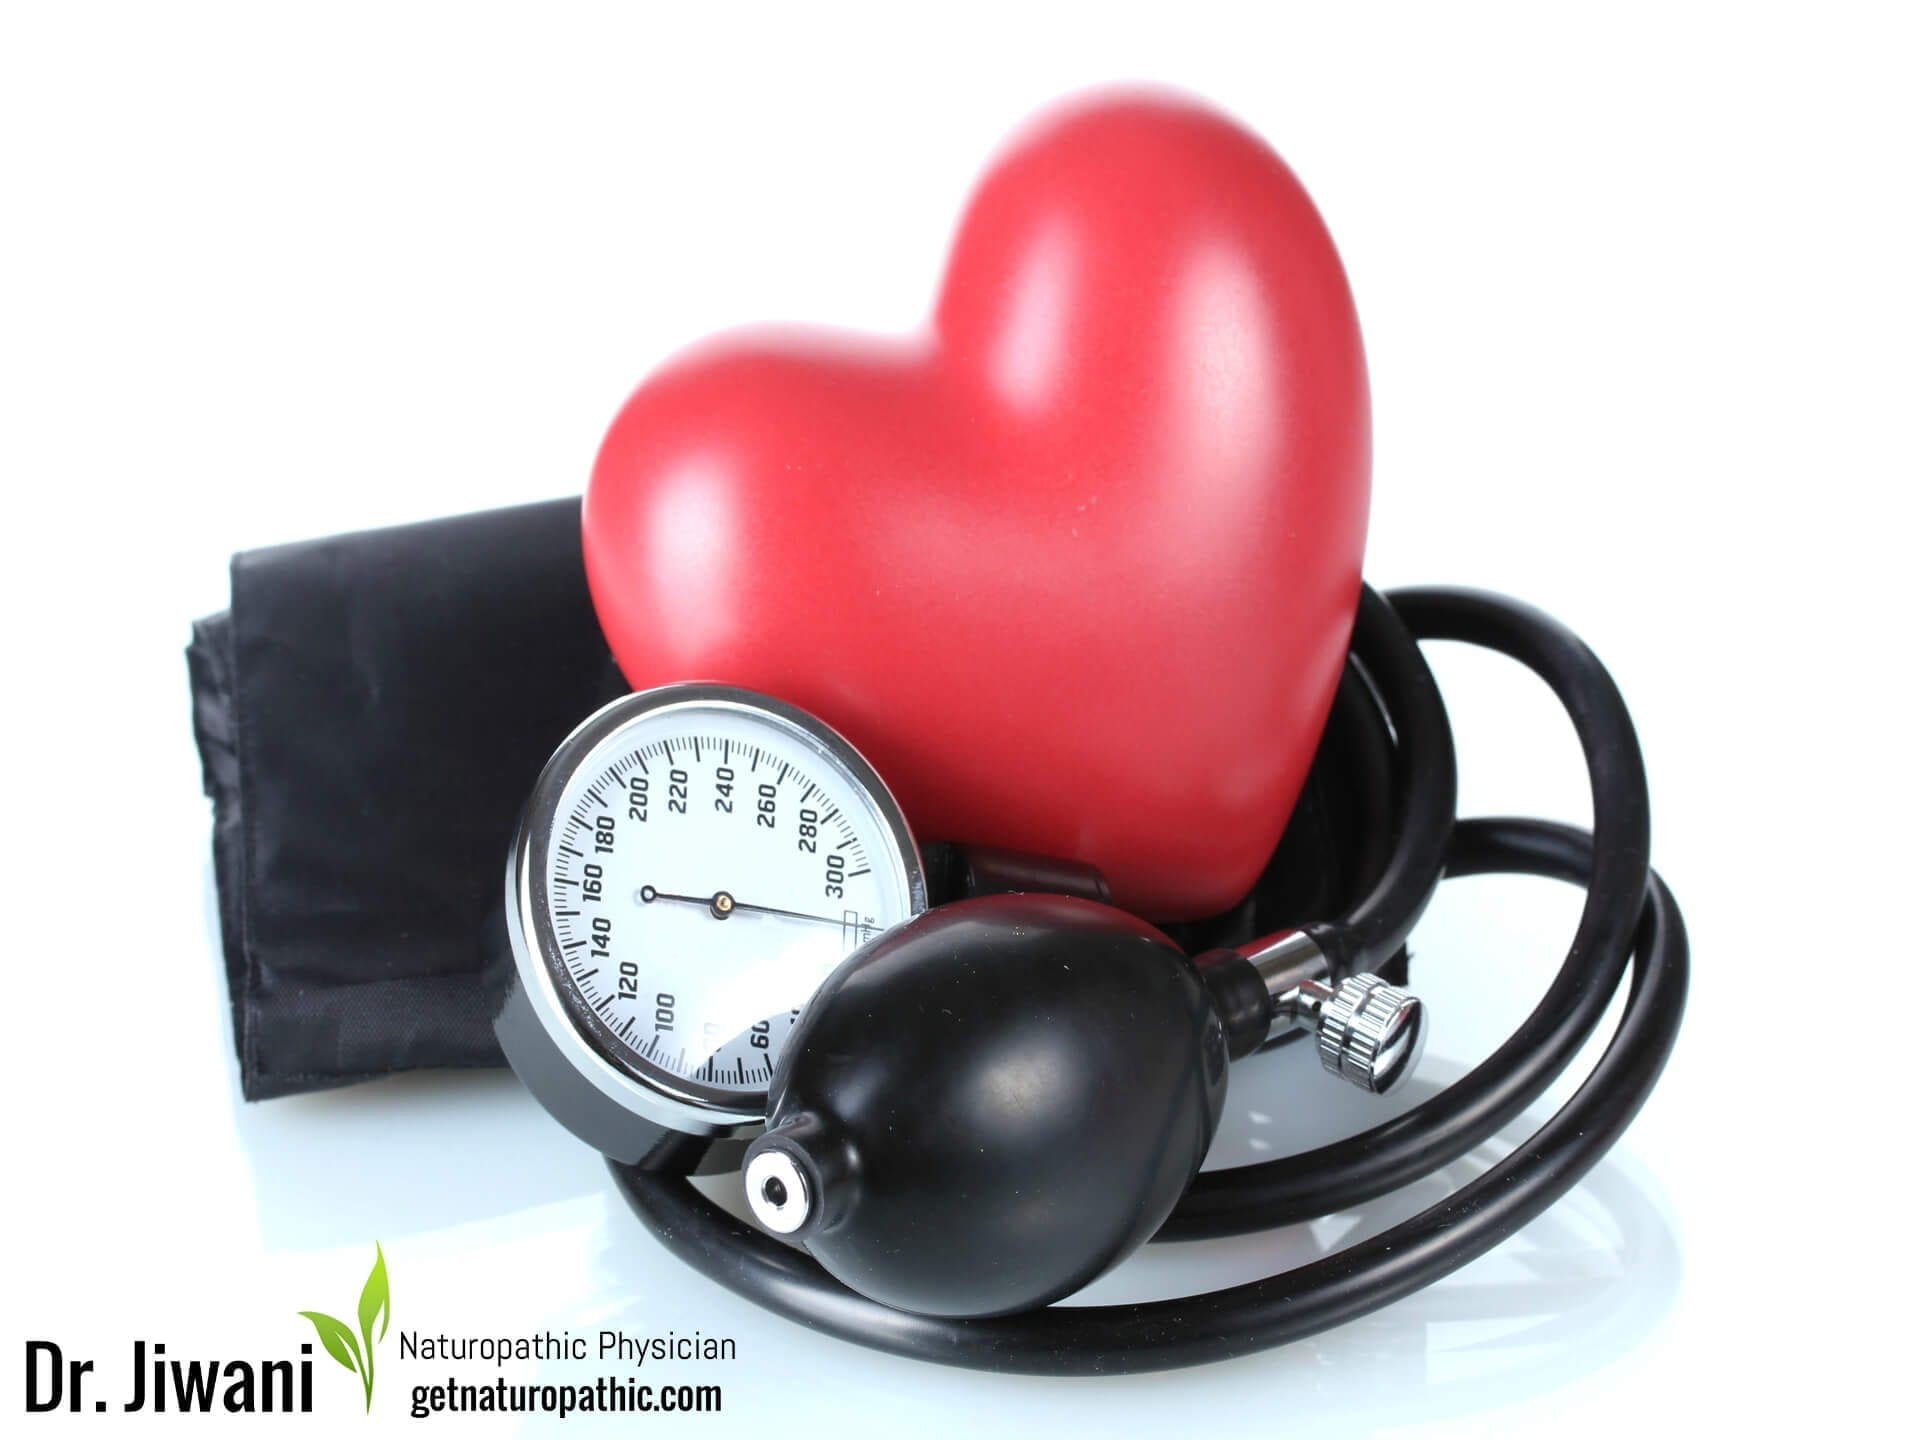 Intermittent Fasting for Health, Energy & Weight Loss Blood Pressure* | Dr. Jiwani's Naturopathic Nuggets Blog